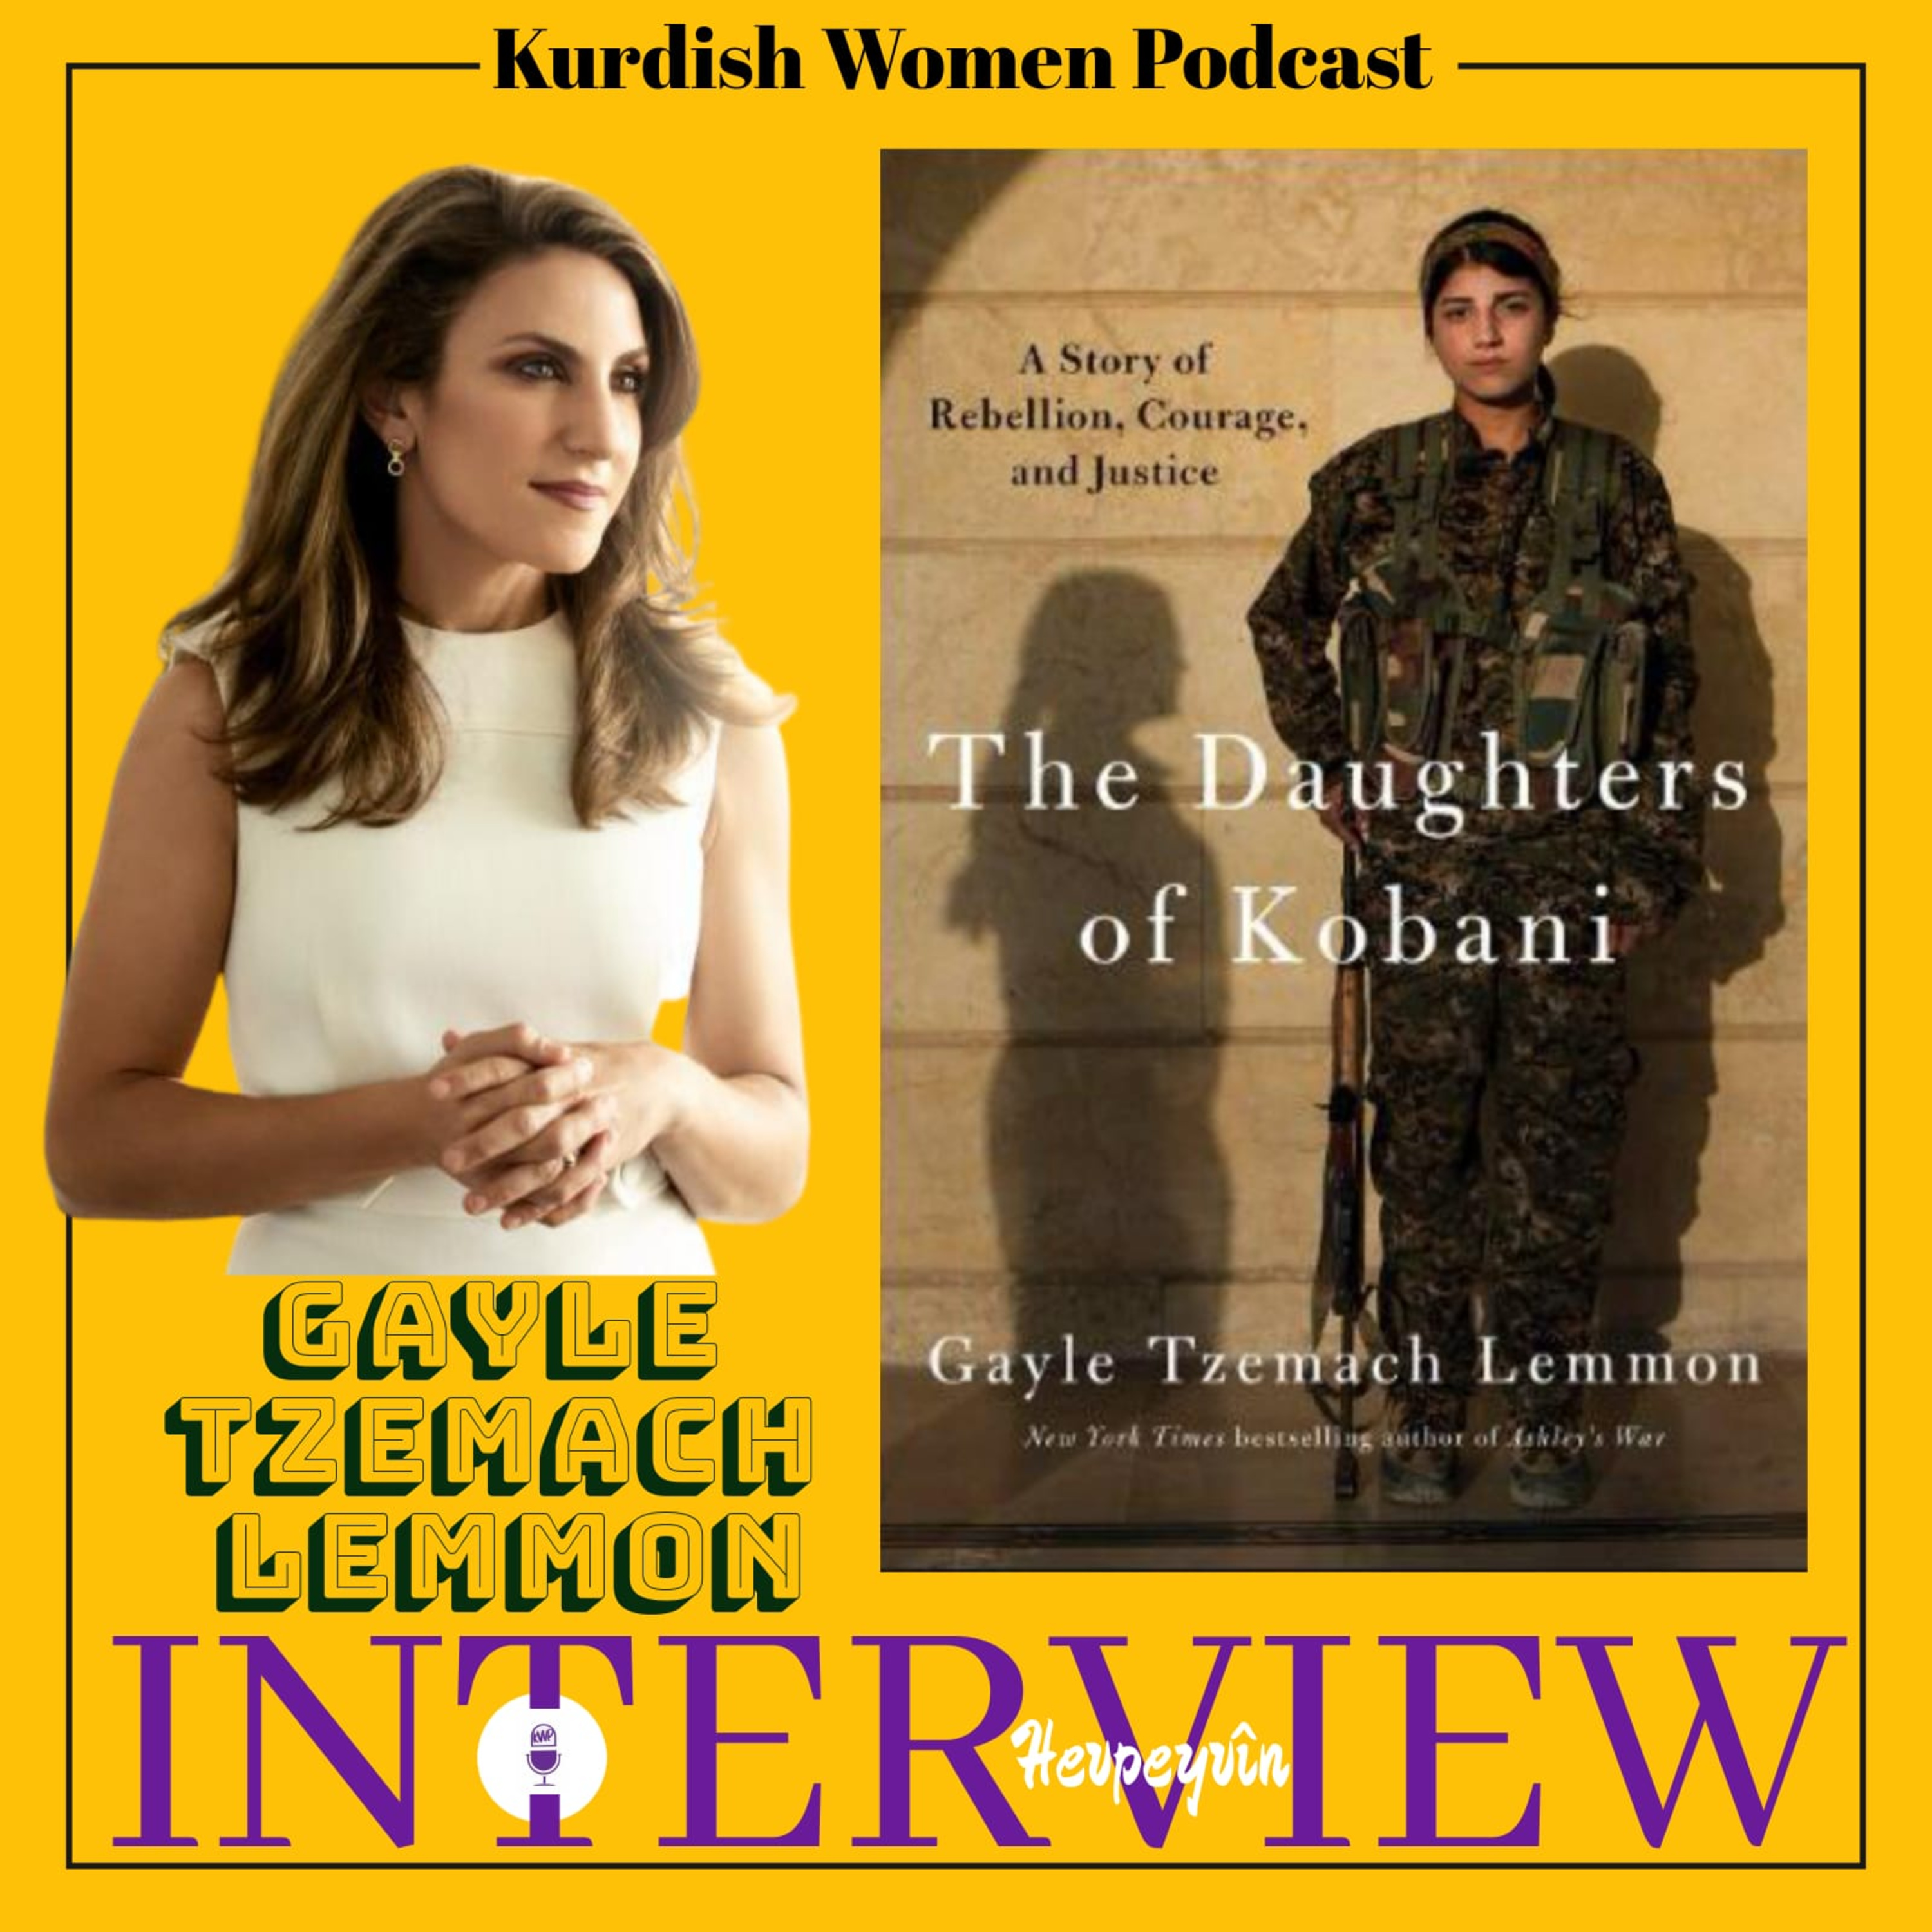 The Daughters of Kobani and the Kurdish Women's Organizing in Syria: Author Gayle Tzemach Lemmon